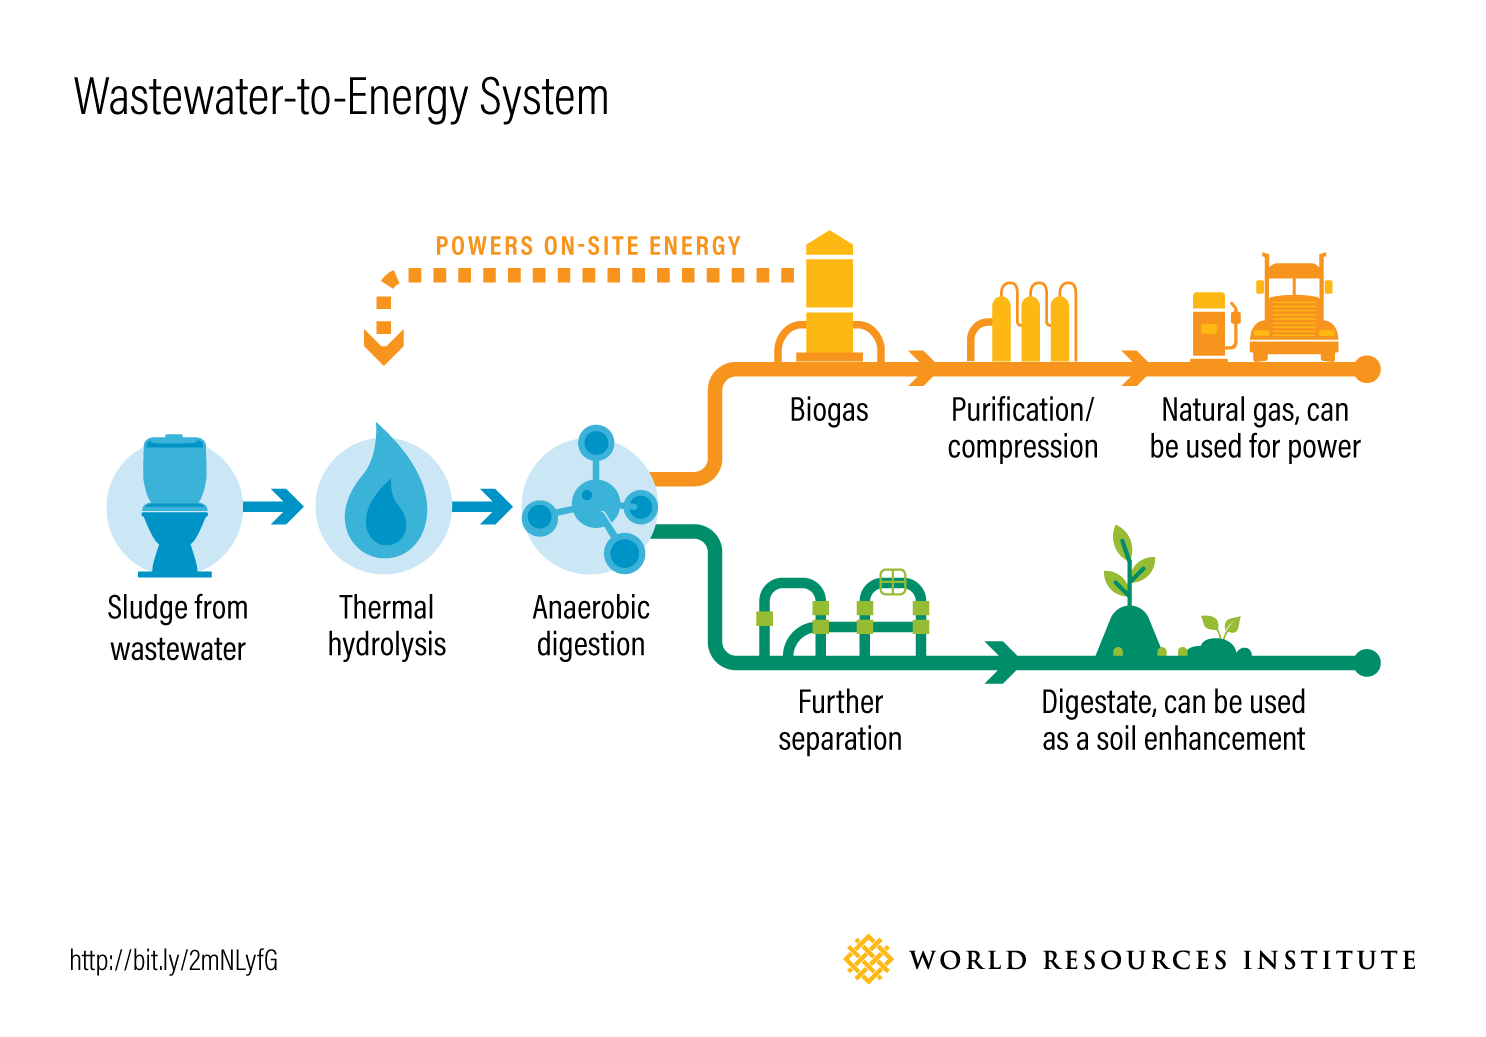 Wastewater-to-Energy System